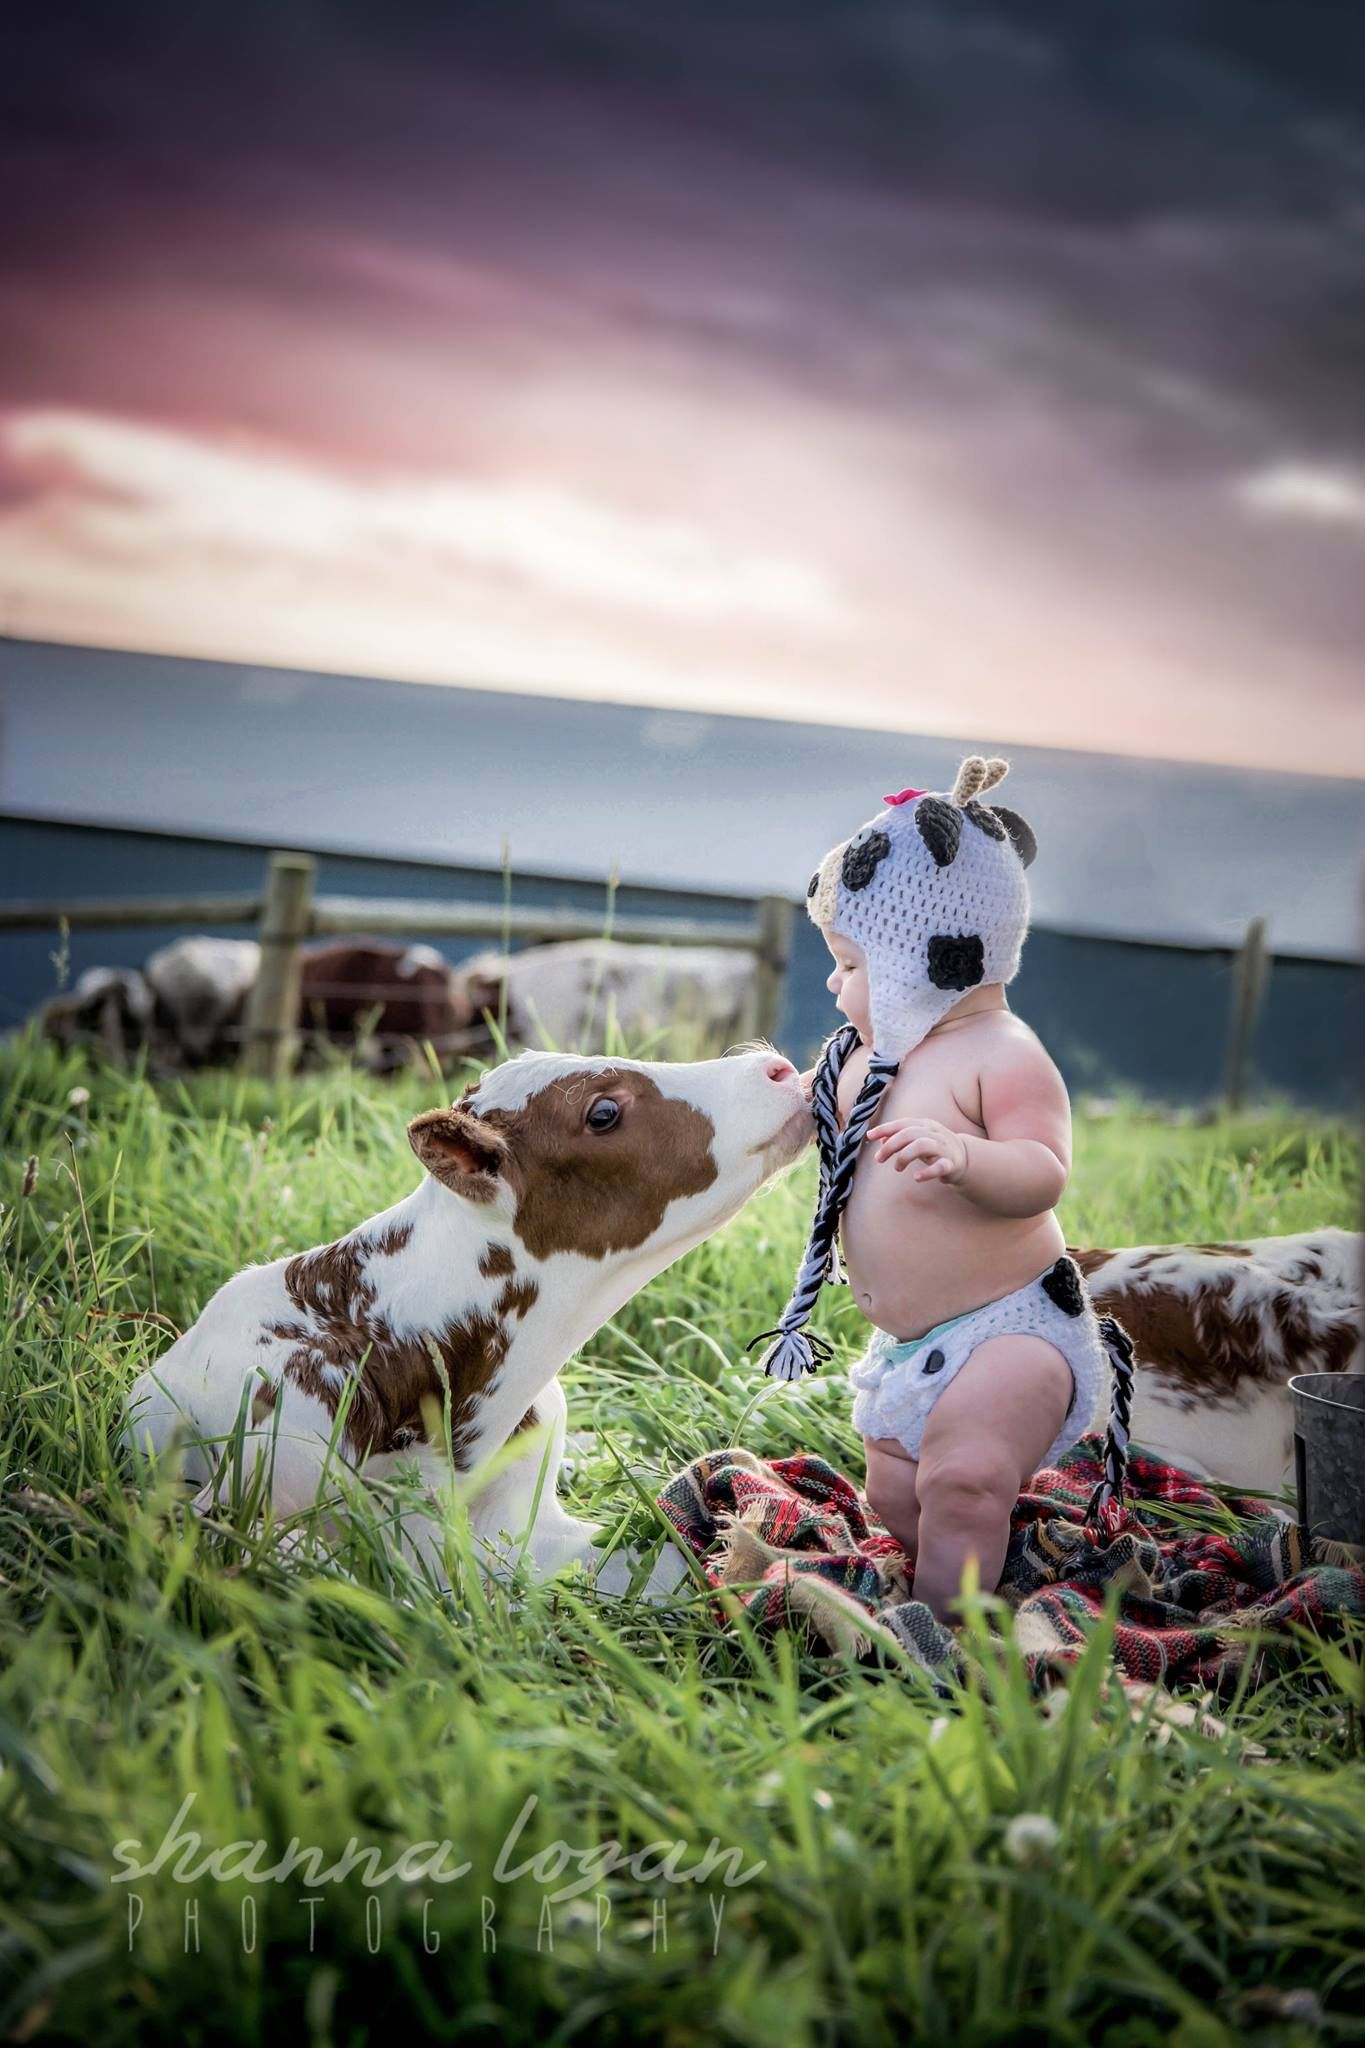 Pin by jessica hartley on photography baby baby cows